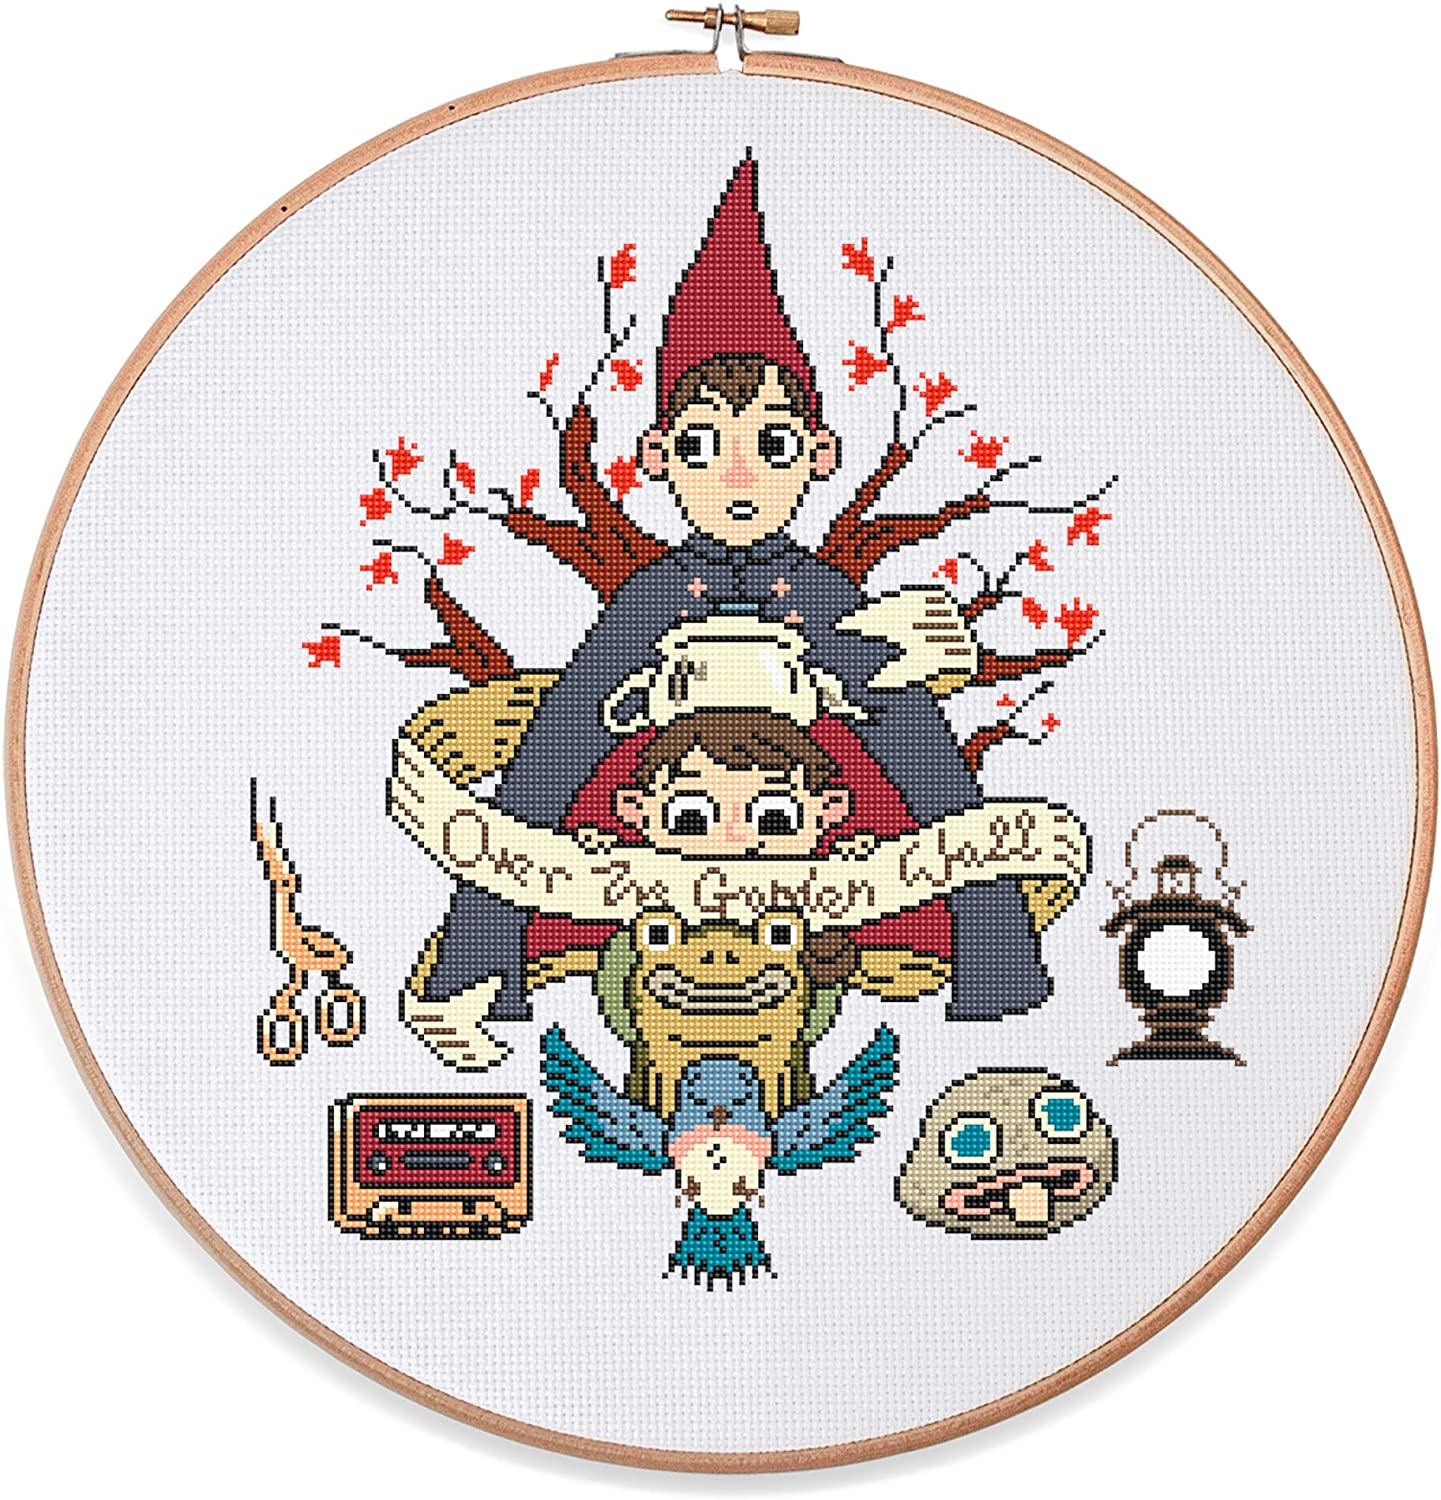 Over The Garden Wall Cross Stitch Kit, 14 Count White Aida, 11.2